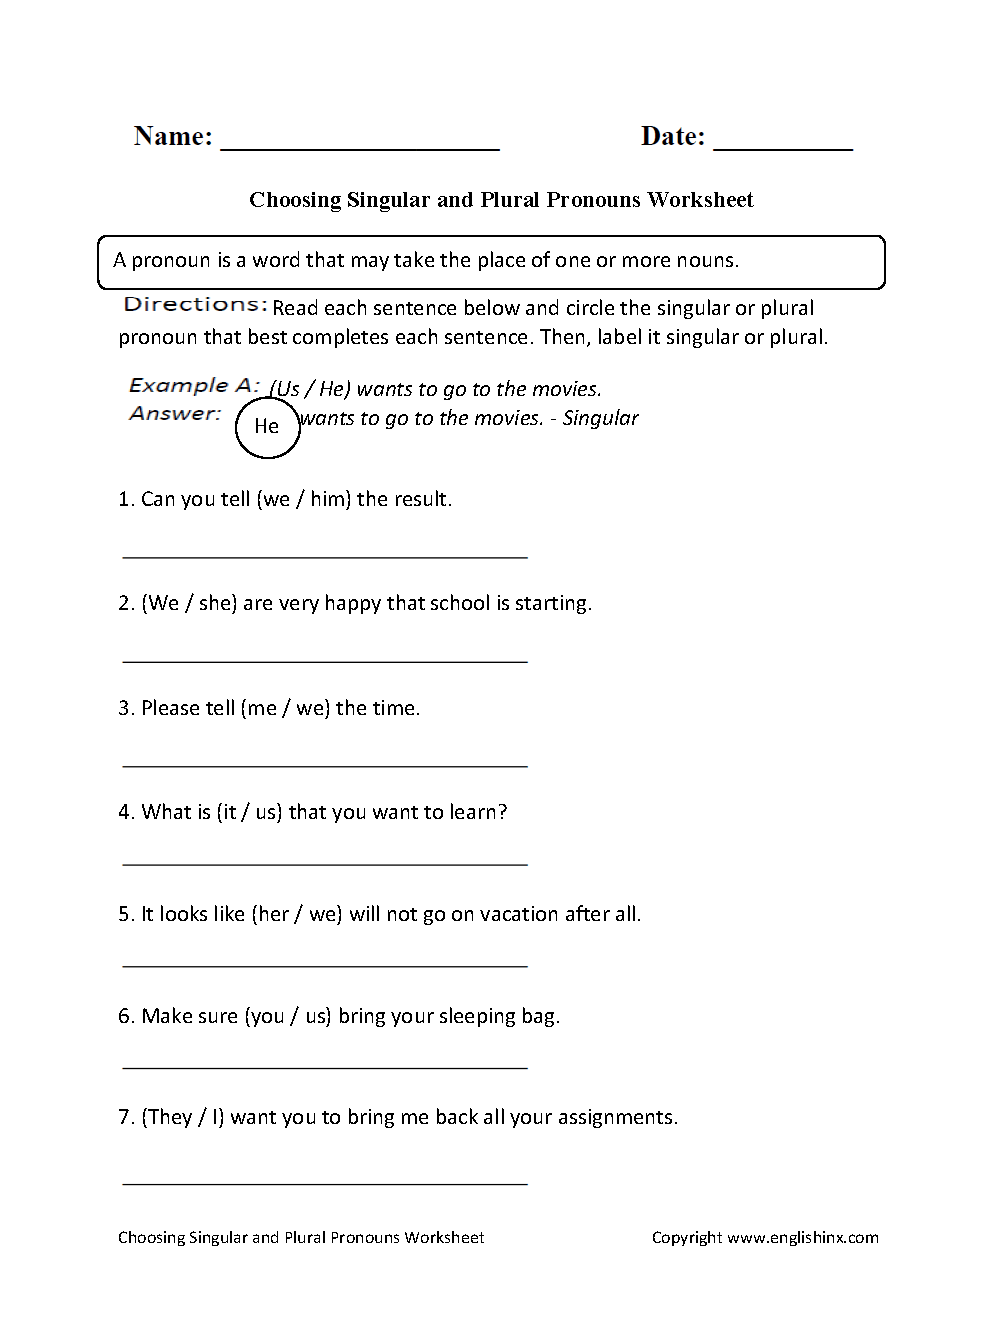 Pronouns Worksheets | Singular and Plural Pronouns Worksheets